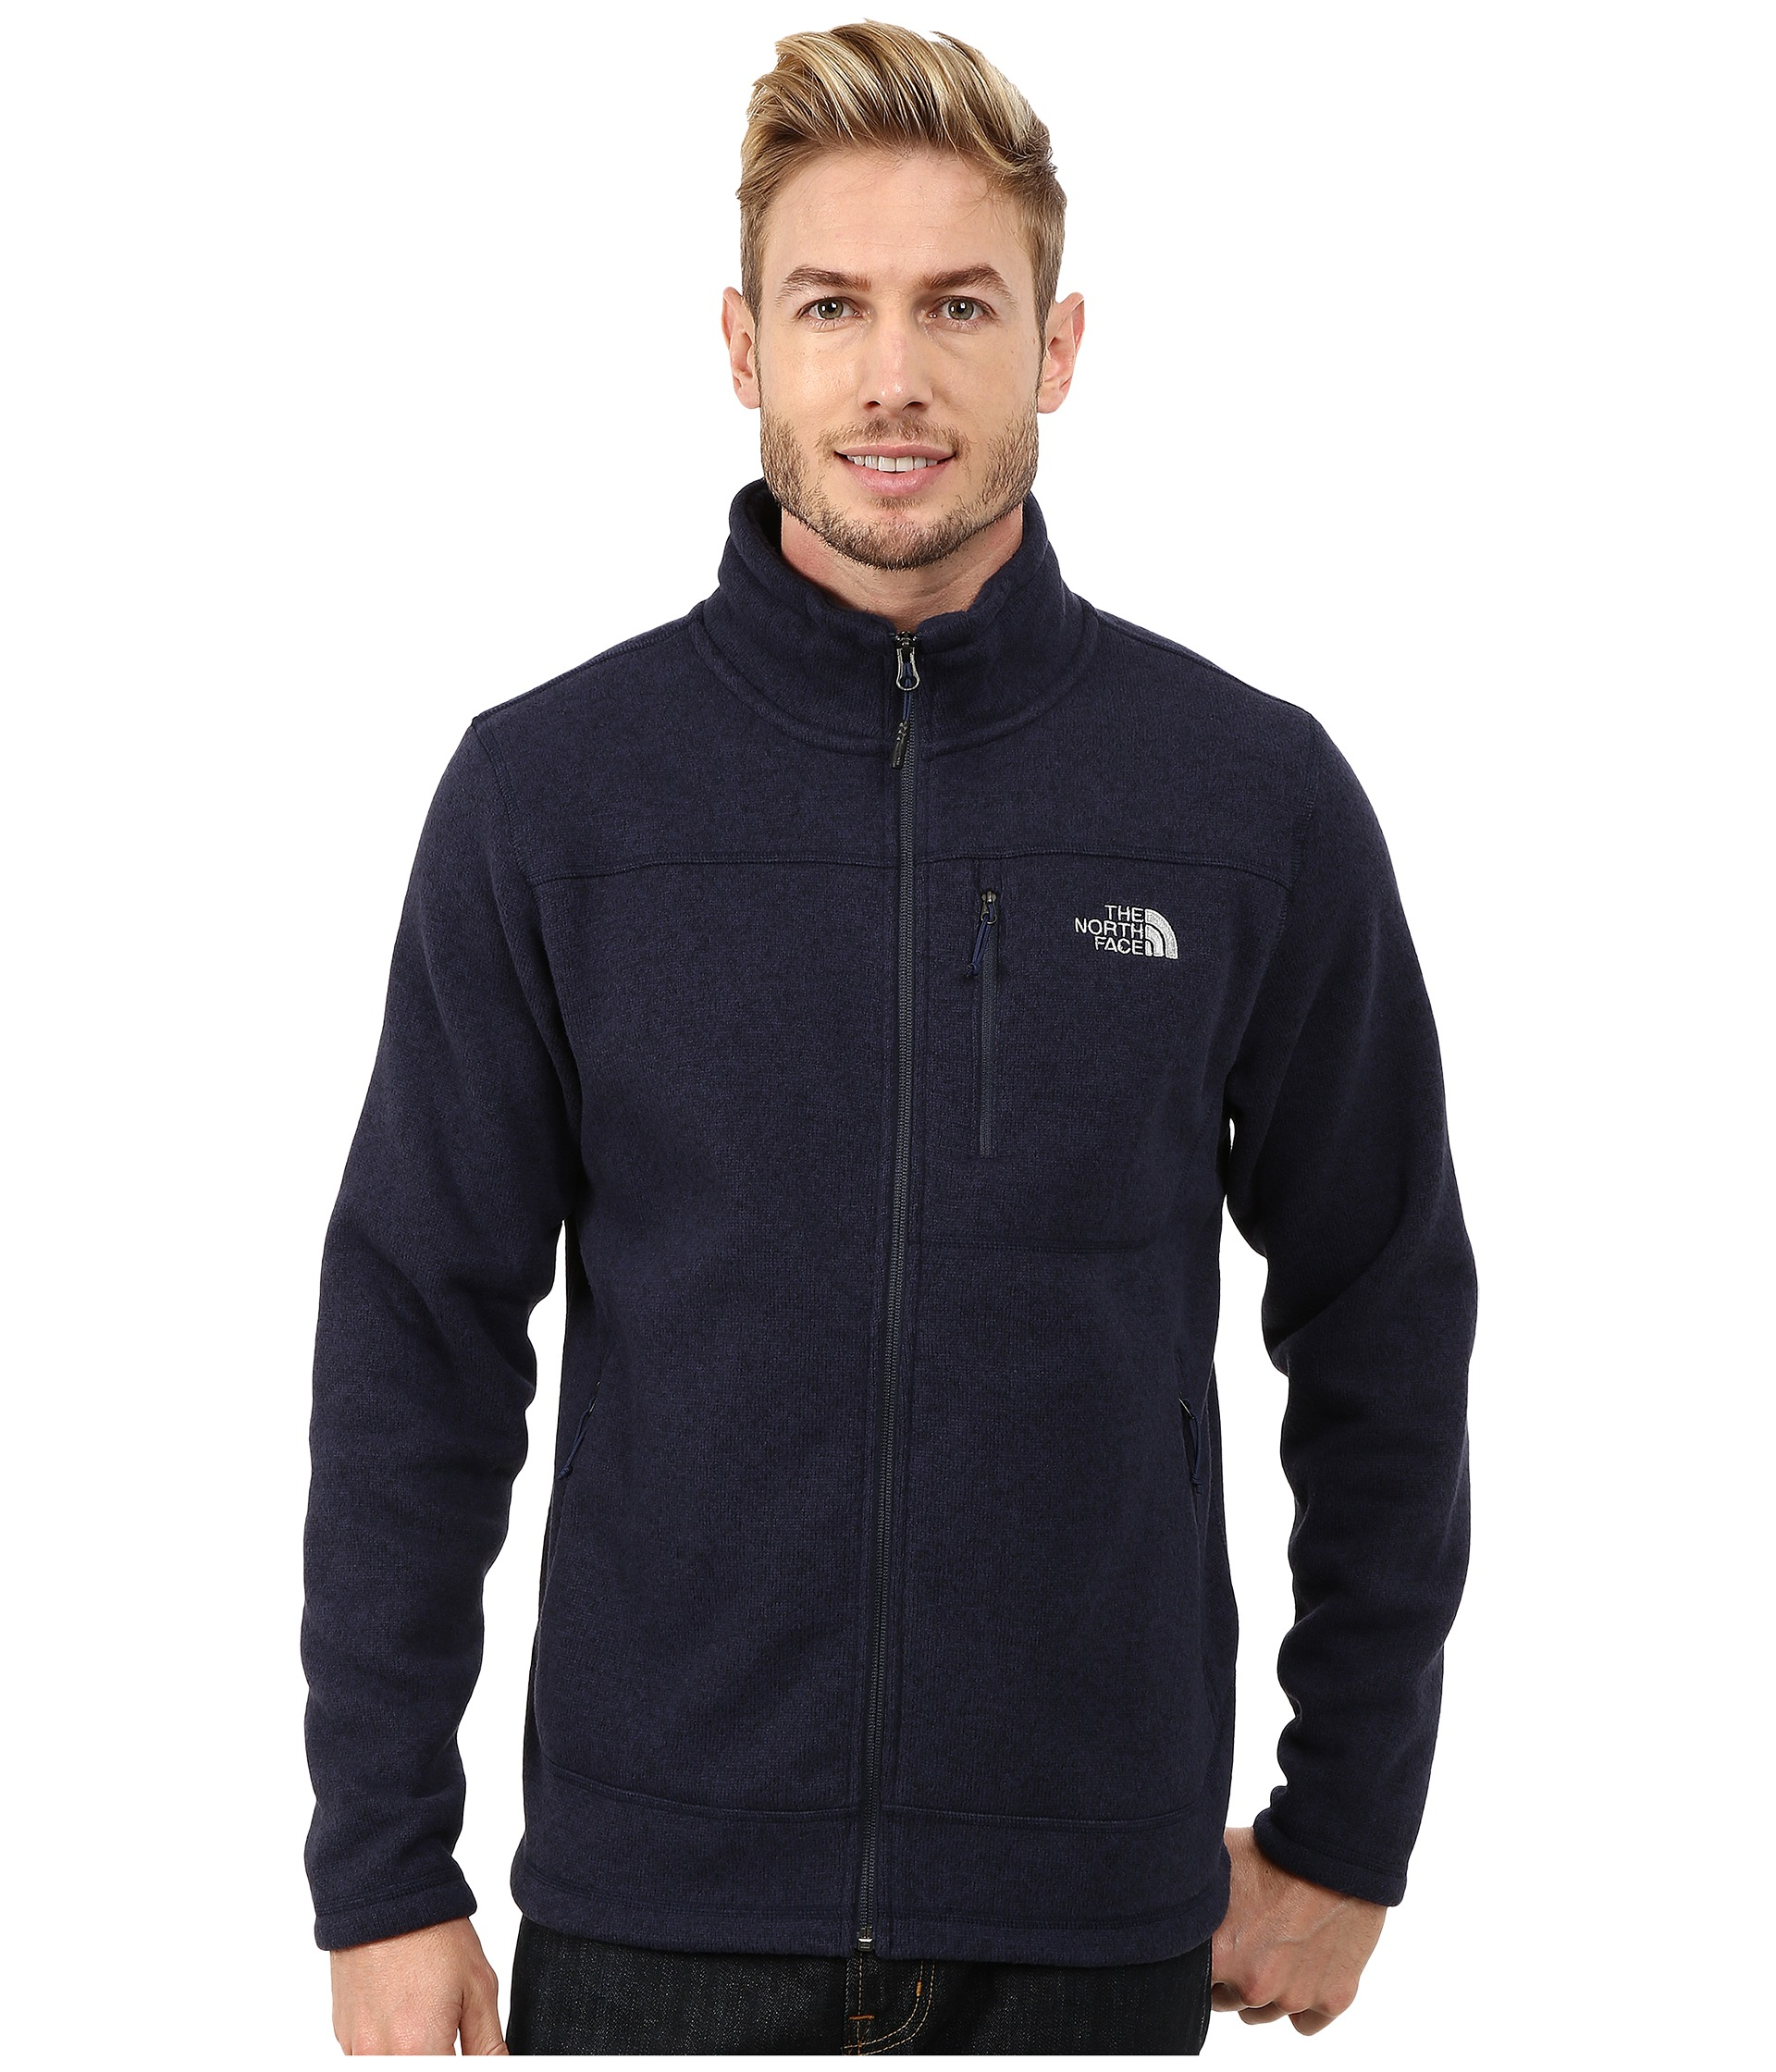 Order North Face Mens 3 In 1 Jackets - Men Coats Outerwear Ckvxardh1whaaqi.zso